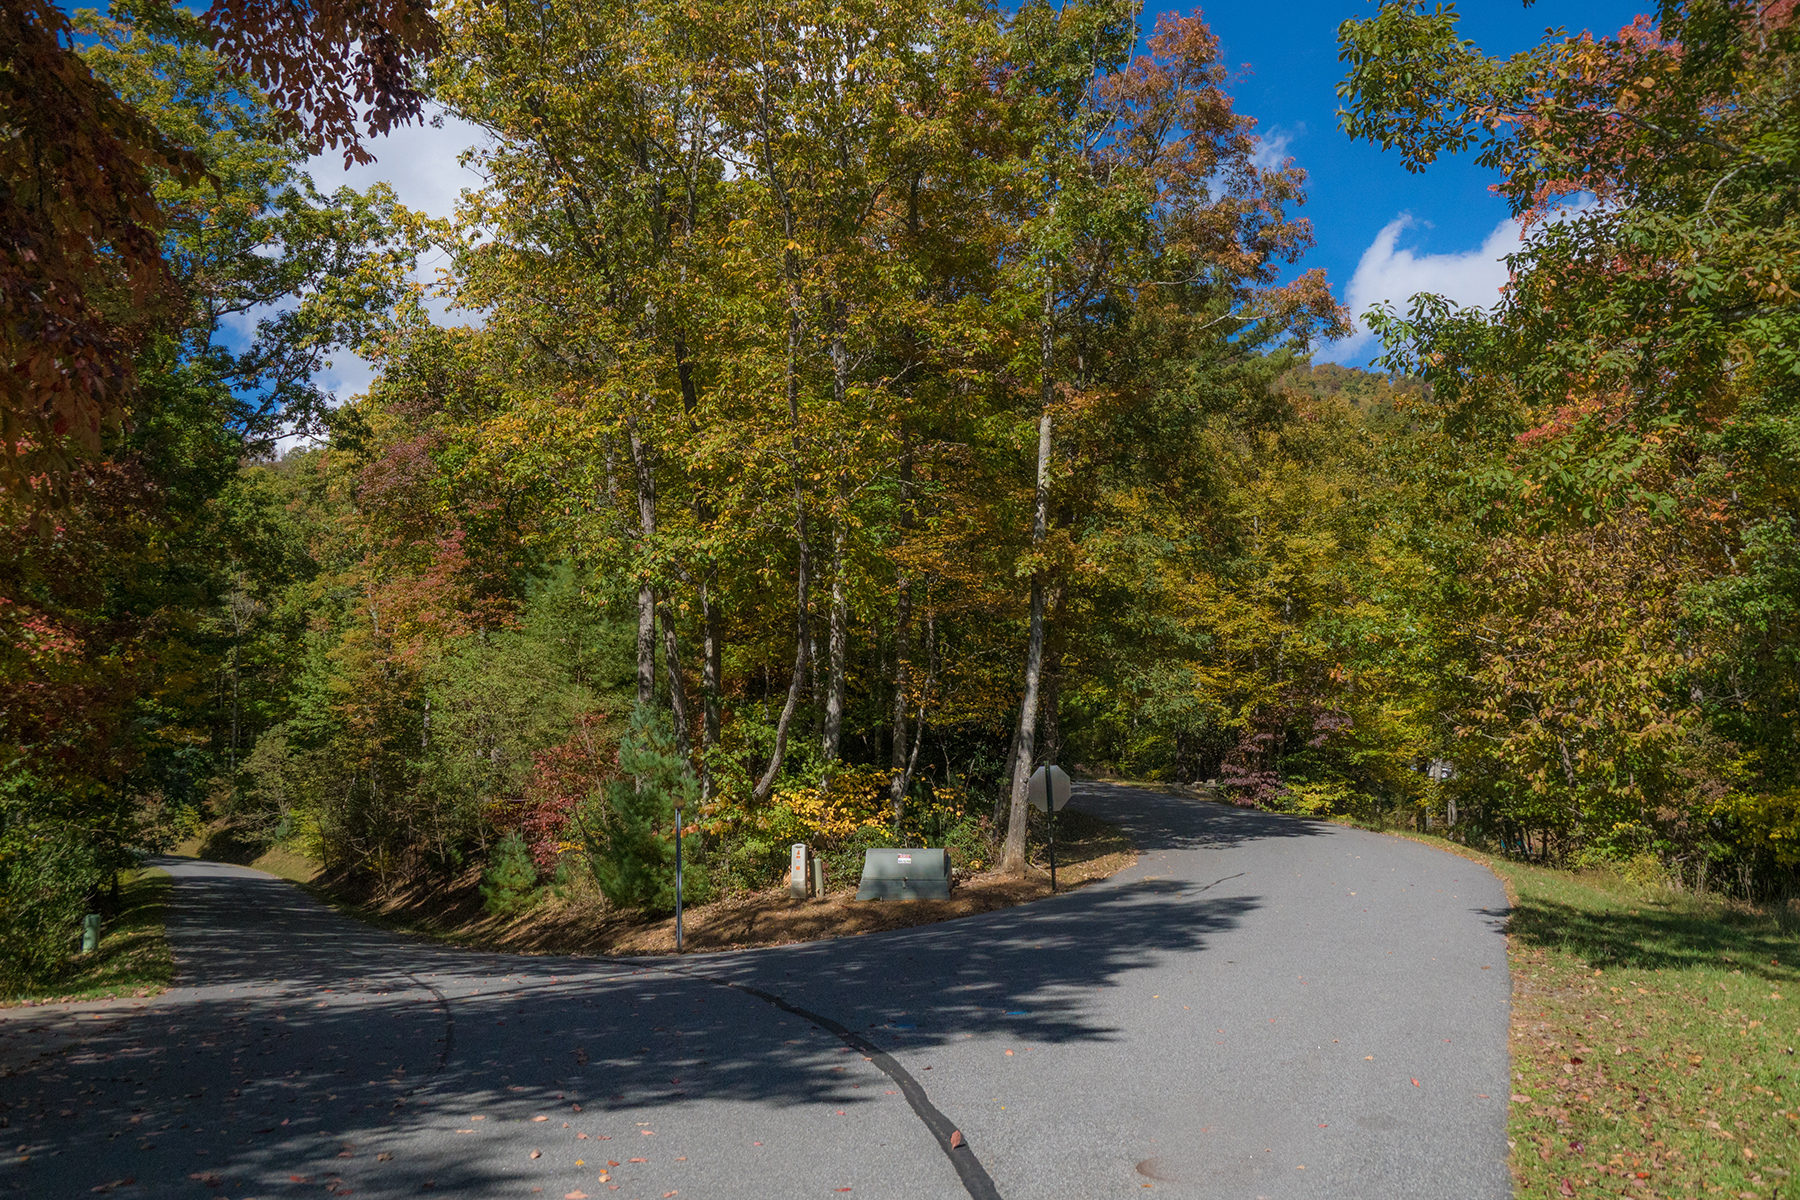 Additional photo for property listing at BOONE - COUNCILL OAKS Lot 13  Honeysuckle Ln,  Boone, North Carolina 28607 United States